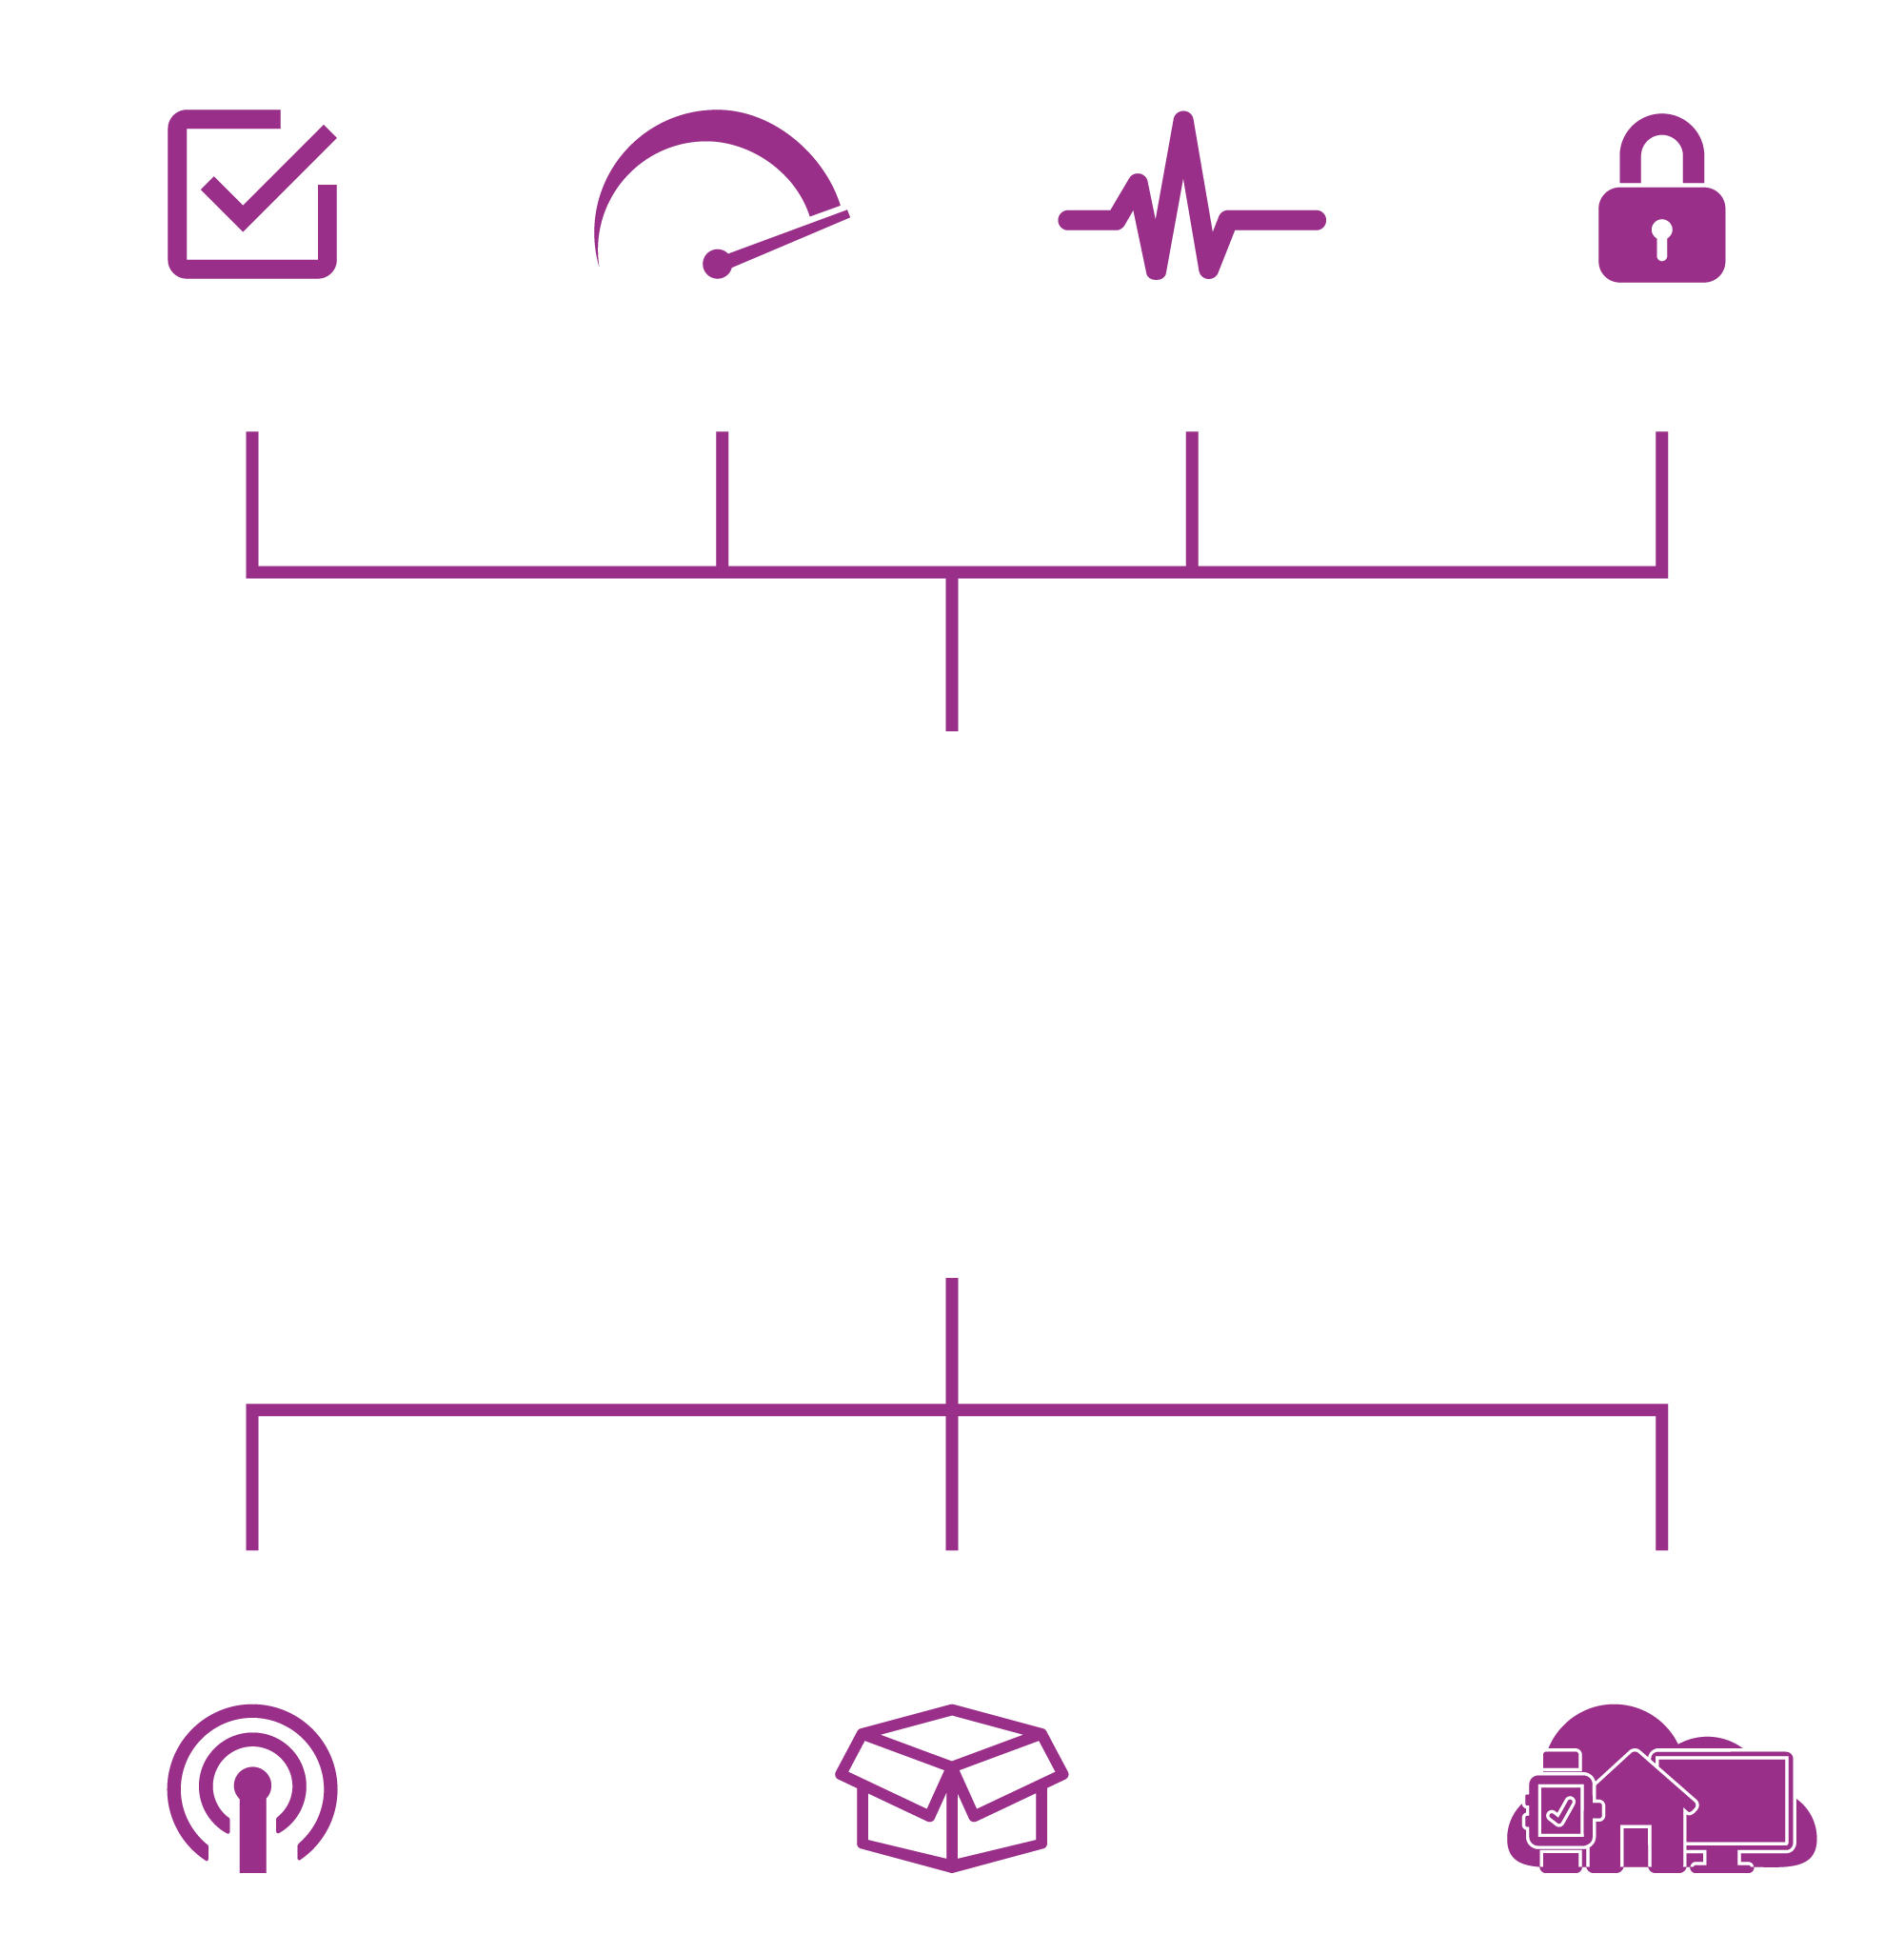 Digital - Consumer Driven Technology